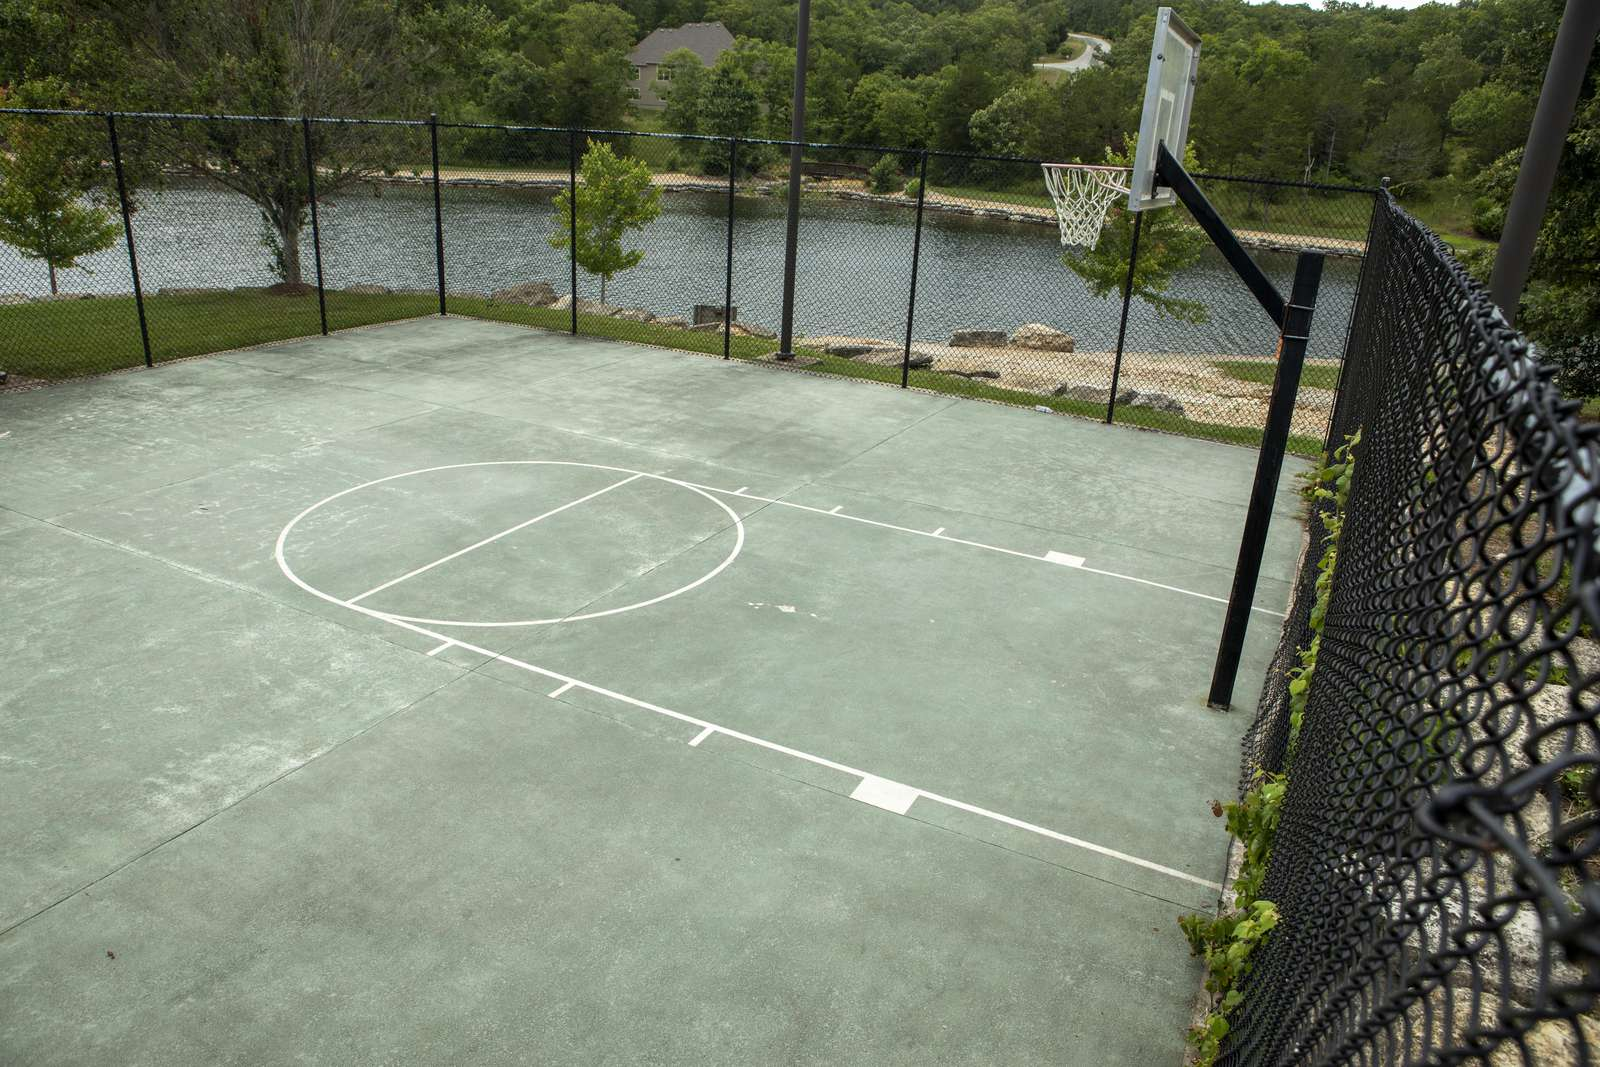 Basketball courts at Fox Hollow in Stonebridge.